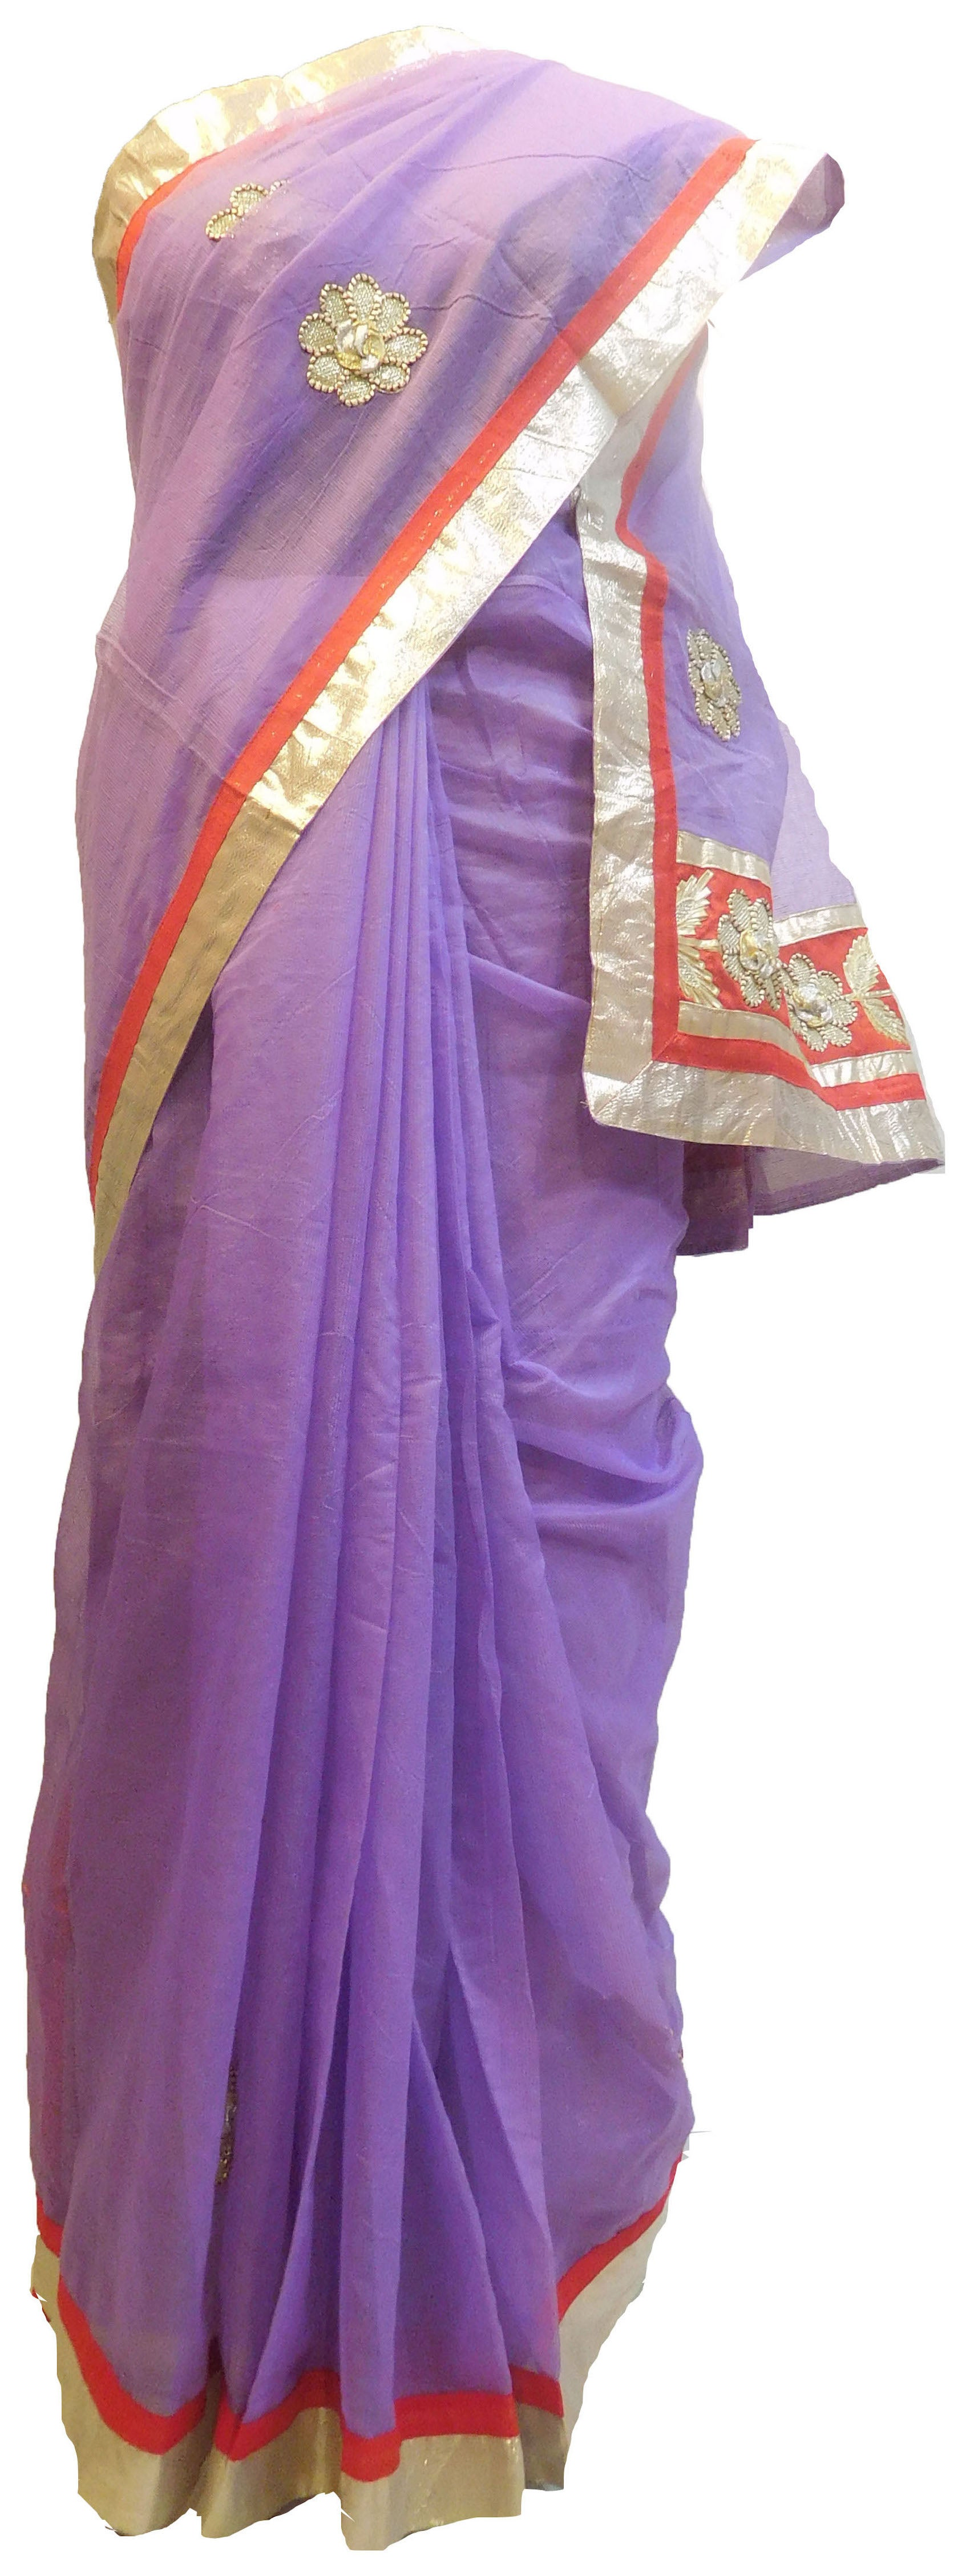 Violet Designer PartyWear Pure Supernet (Cotton) Gota Thread Work Saree Sari With Grey Border E556